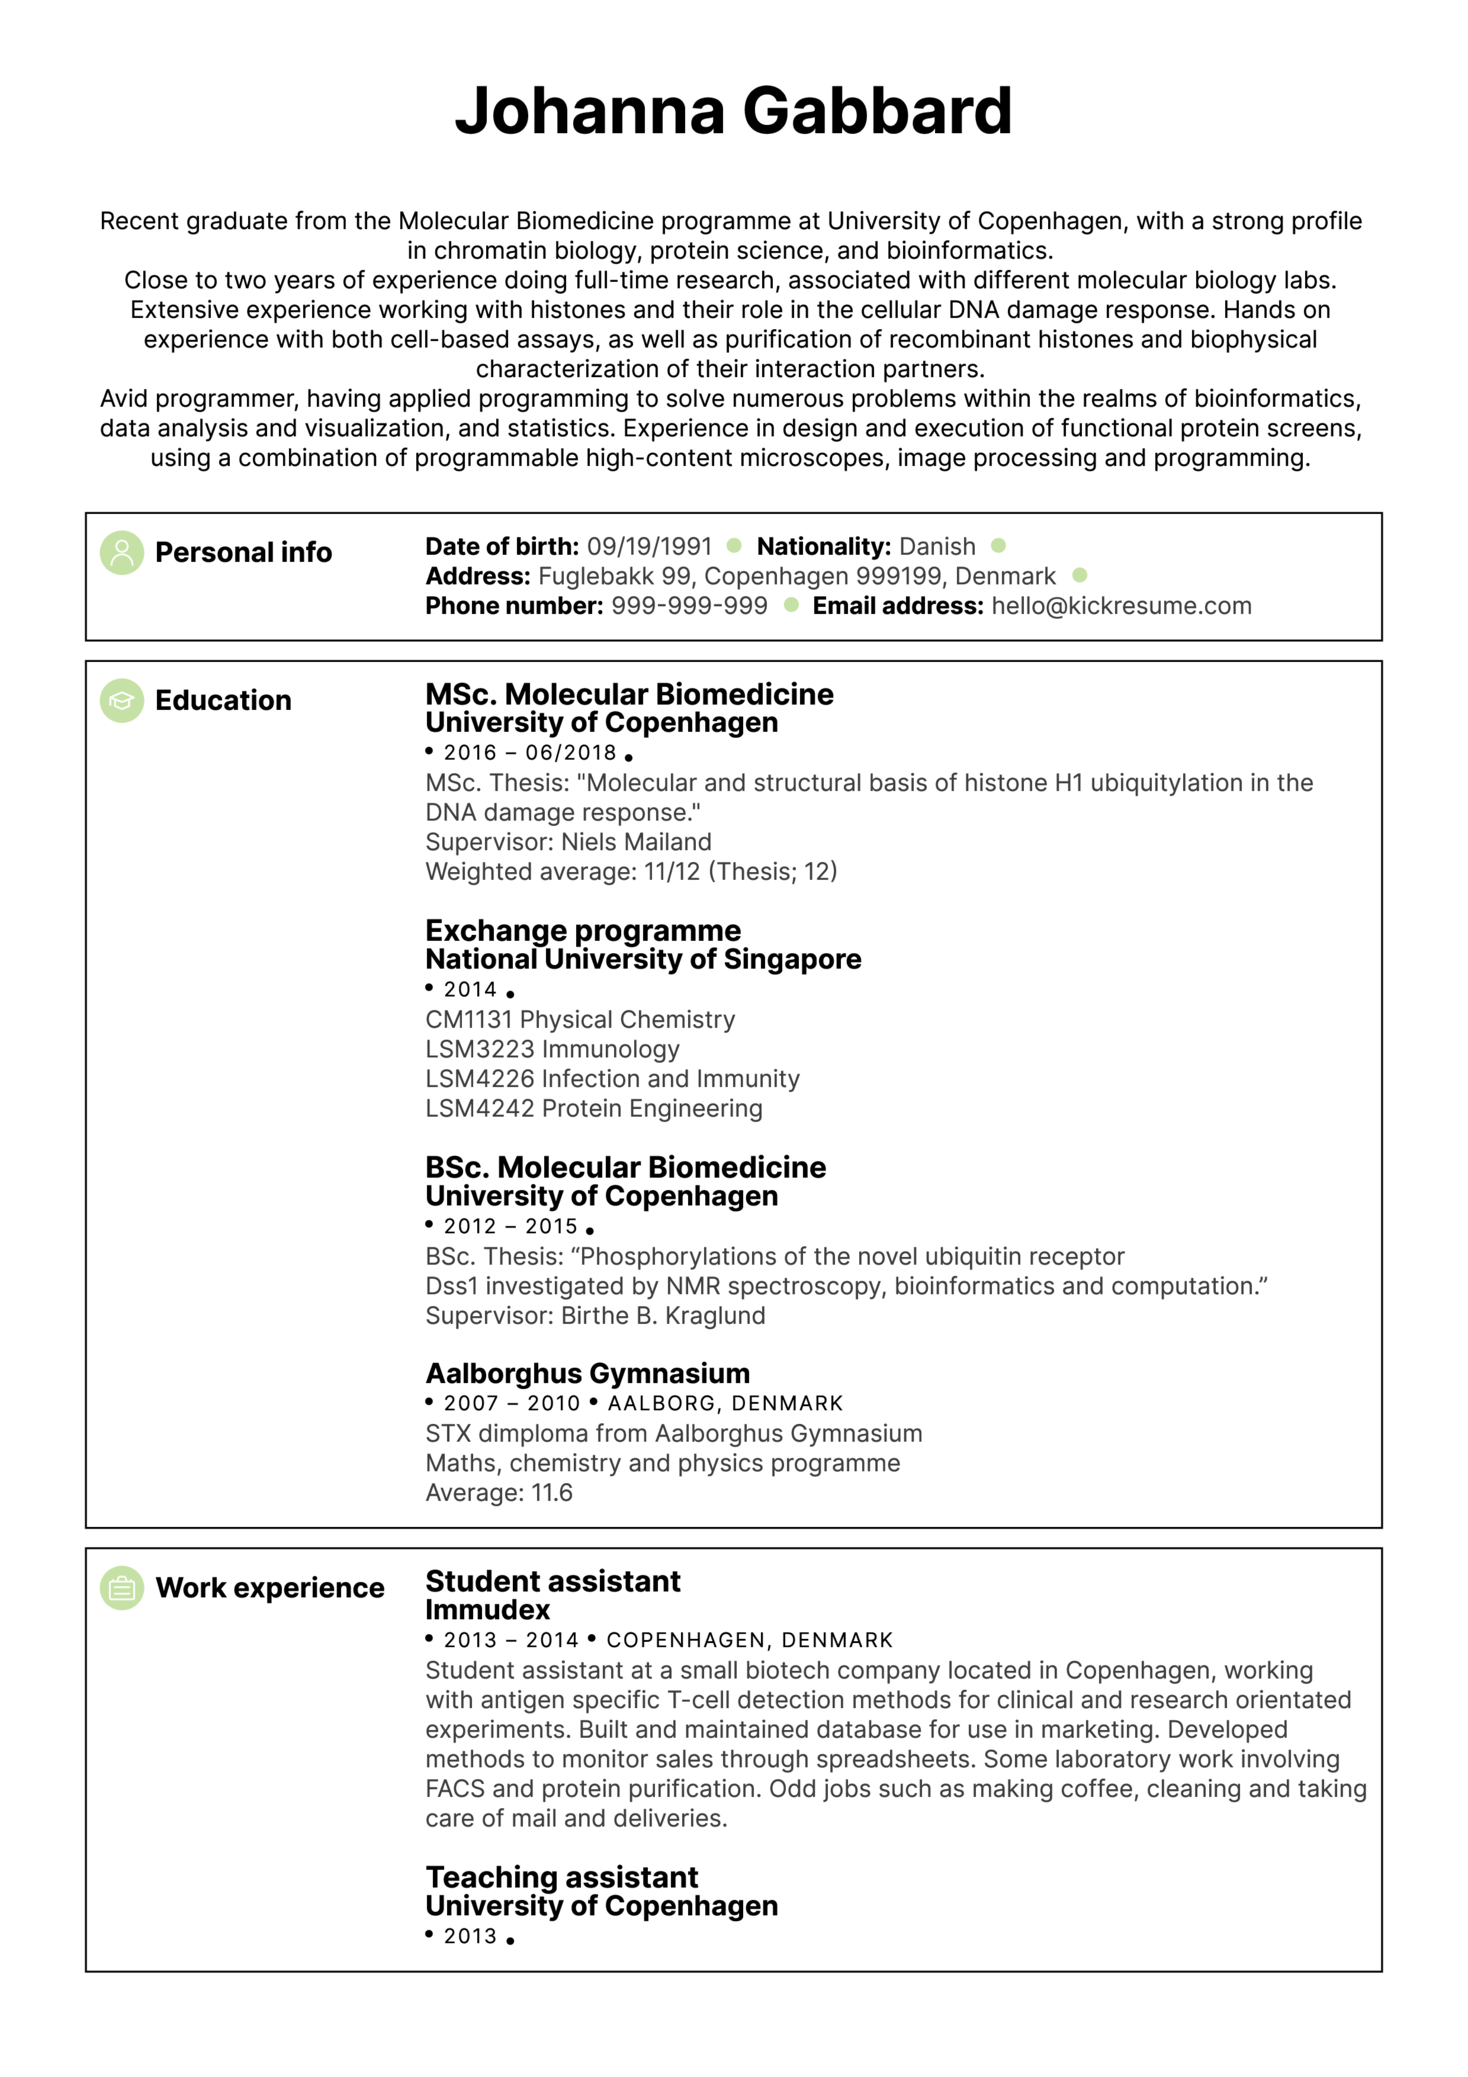 University Biomedical Researcher Resume Sample (Parte 1)